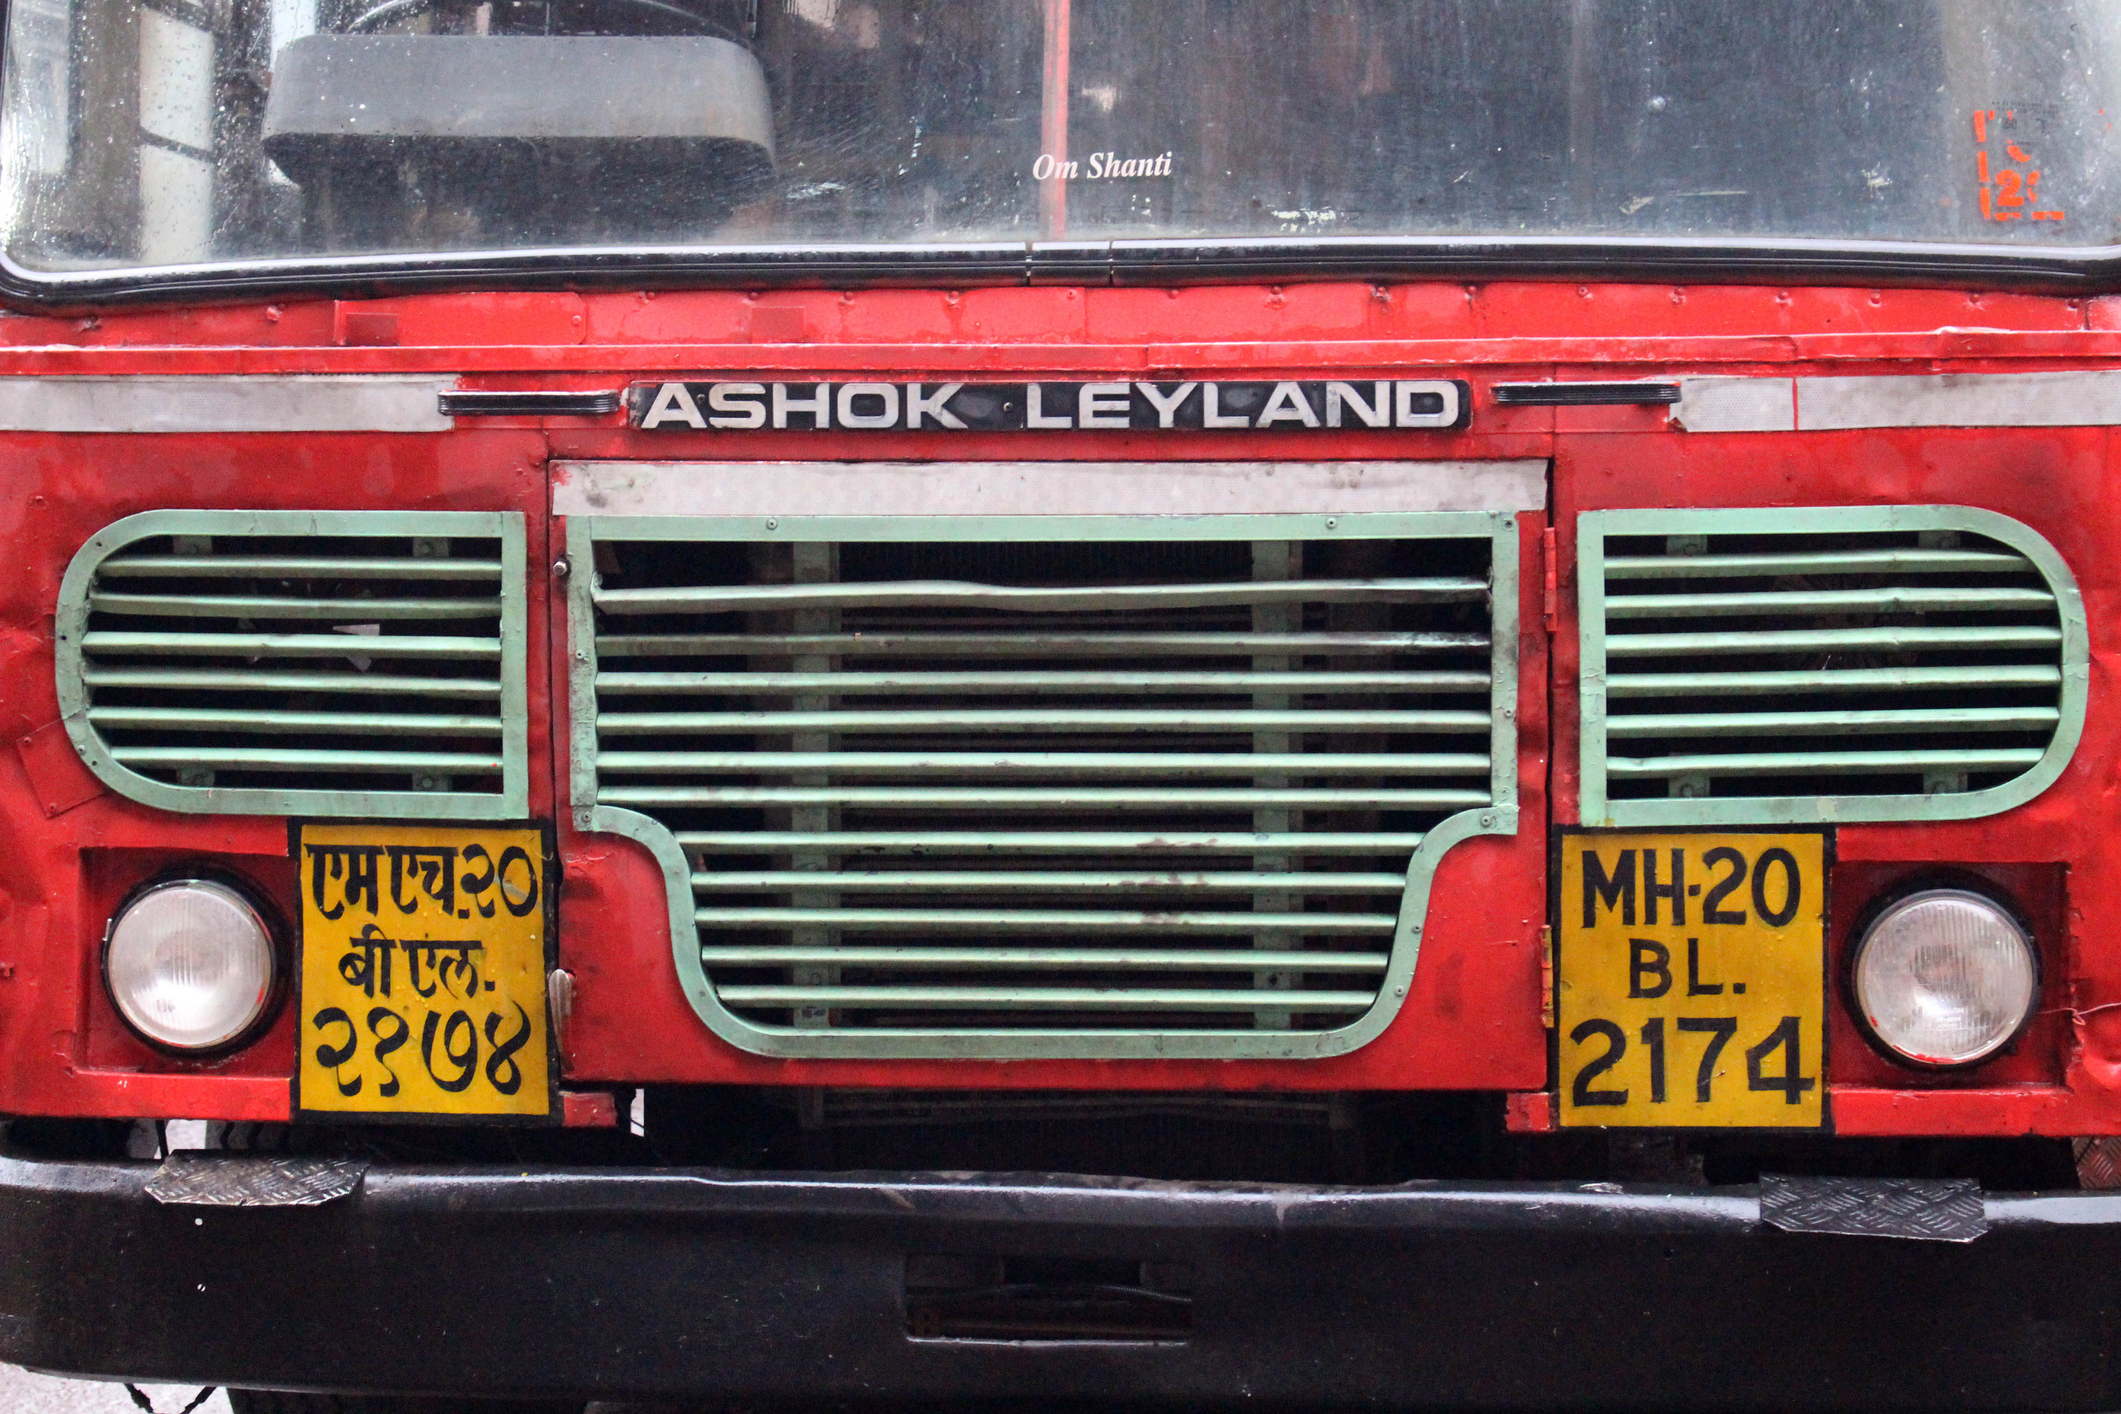 Ashok Leyland, said its plants at Ennore and Pantnagar would be shut for 16 and 18 days, respectively, and that its Alwar and Bhandara units would both be shut for 10 days. Its Hosur 1 and 2 and CPPS plants will all be shut for five days, the company said in a statement.